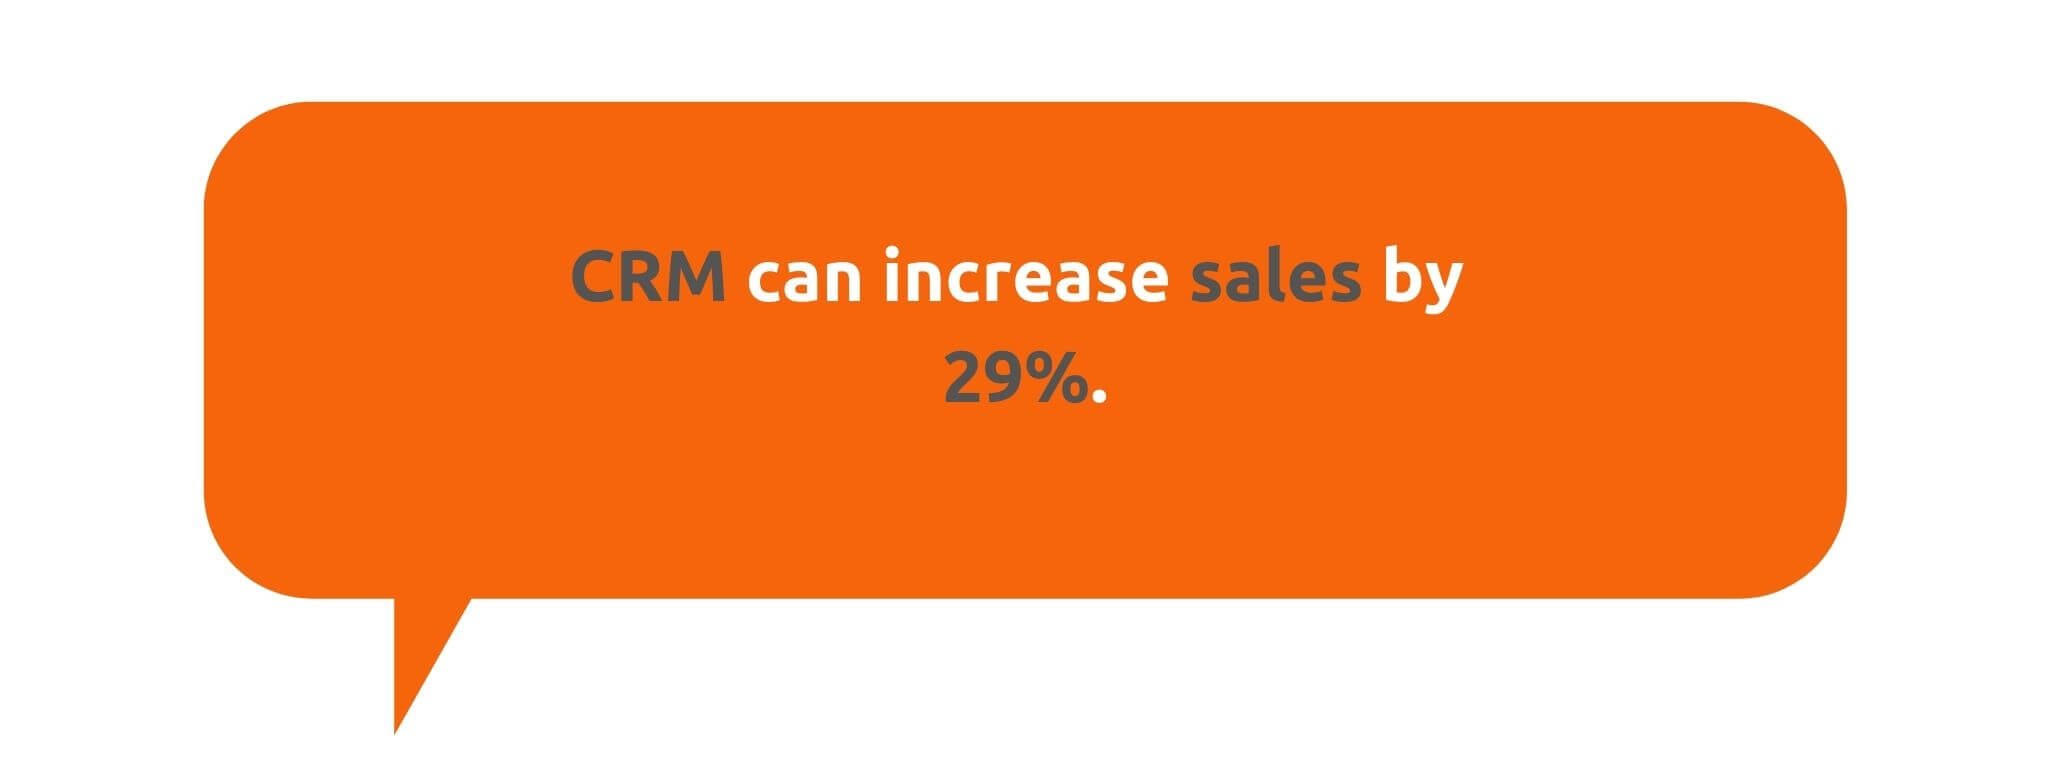 CRM Can Increase Sales - 50+ CRM Stats - Replyco Helpdesk Software for eCommerce